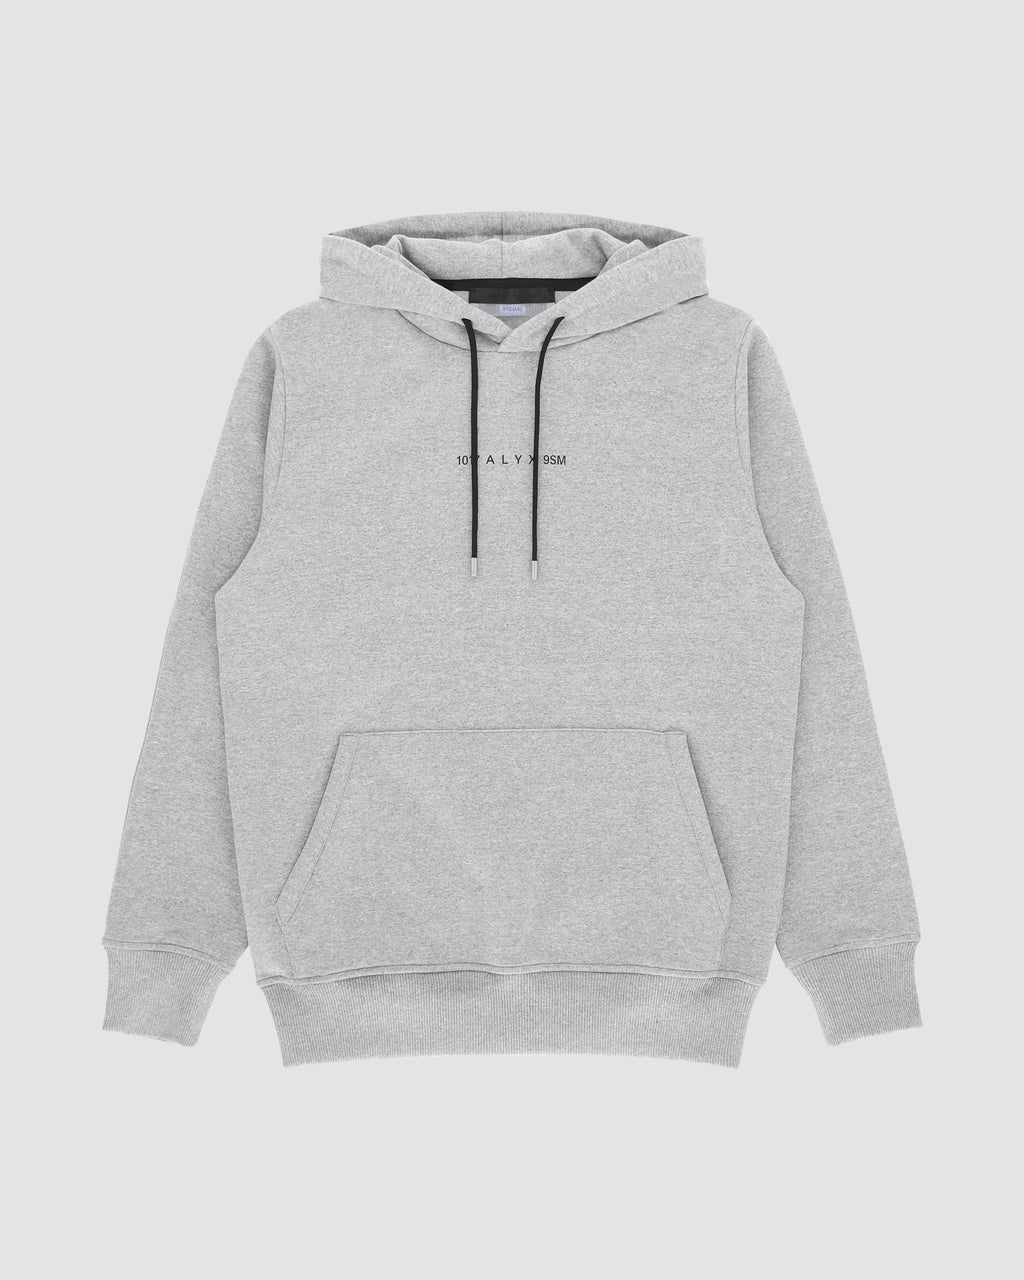 1017 ALYX 9SM | LOGO HOODED SWEATSHIRT | Sweatshirt | F19, Grey, Visual